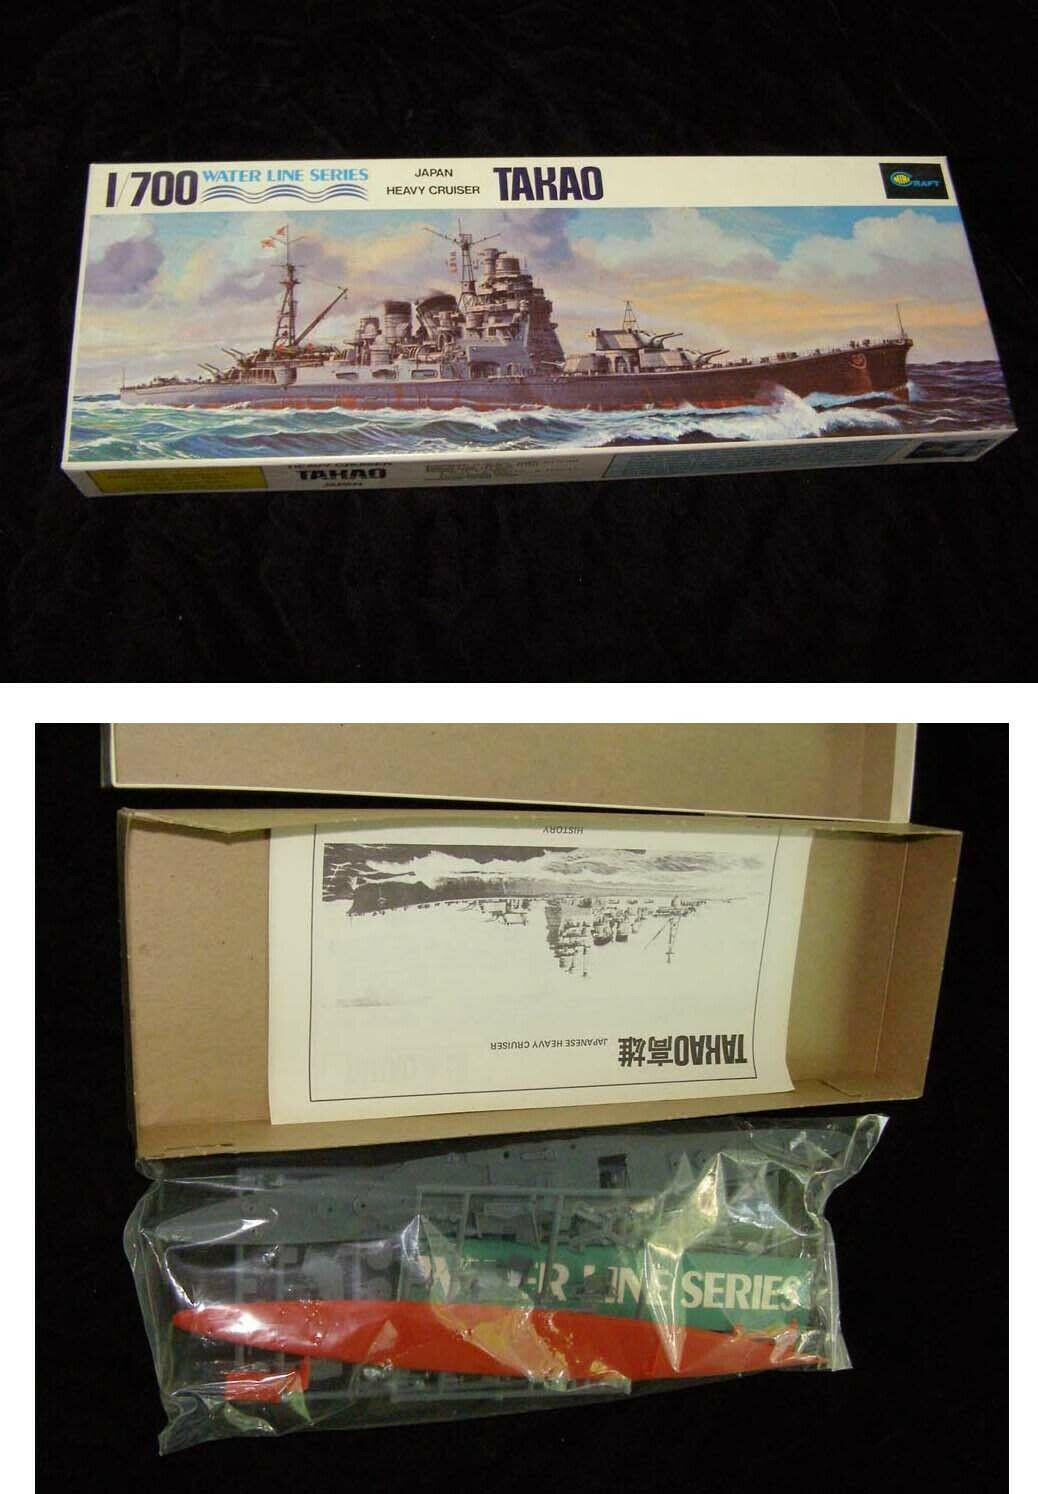 Primary image for Takao Japan Heavy Cruiser Battleship Model Kit Mini Craft Water Line Series